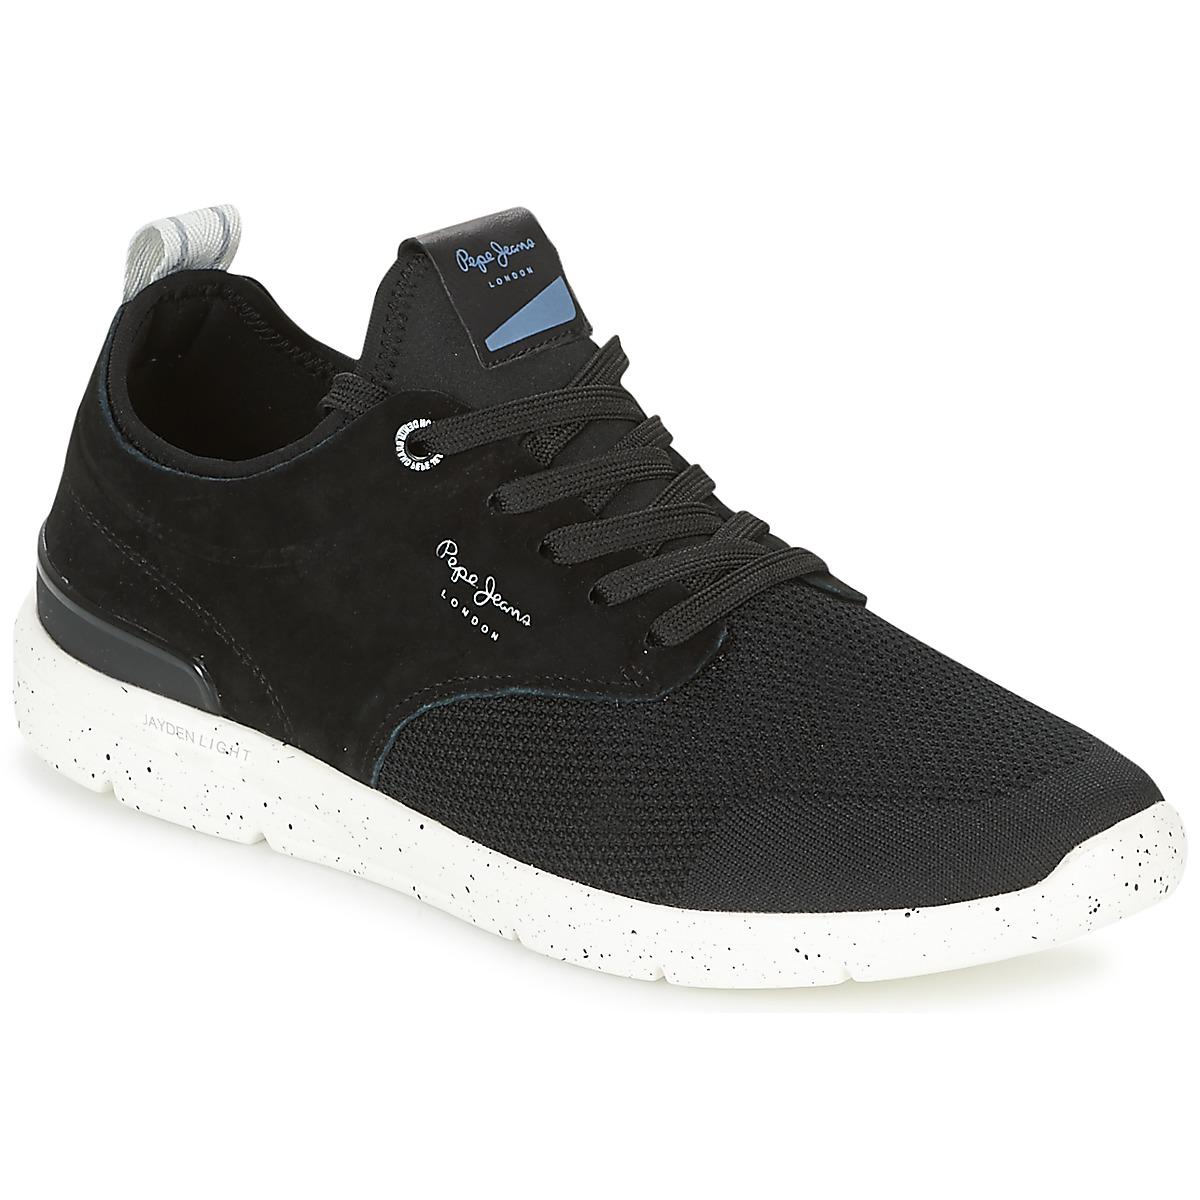 Mens Tinker Pro 120 Knitted Trainers, Black Pepe Jeans London